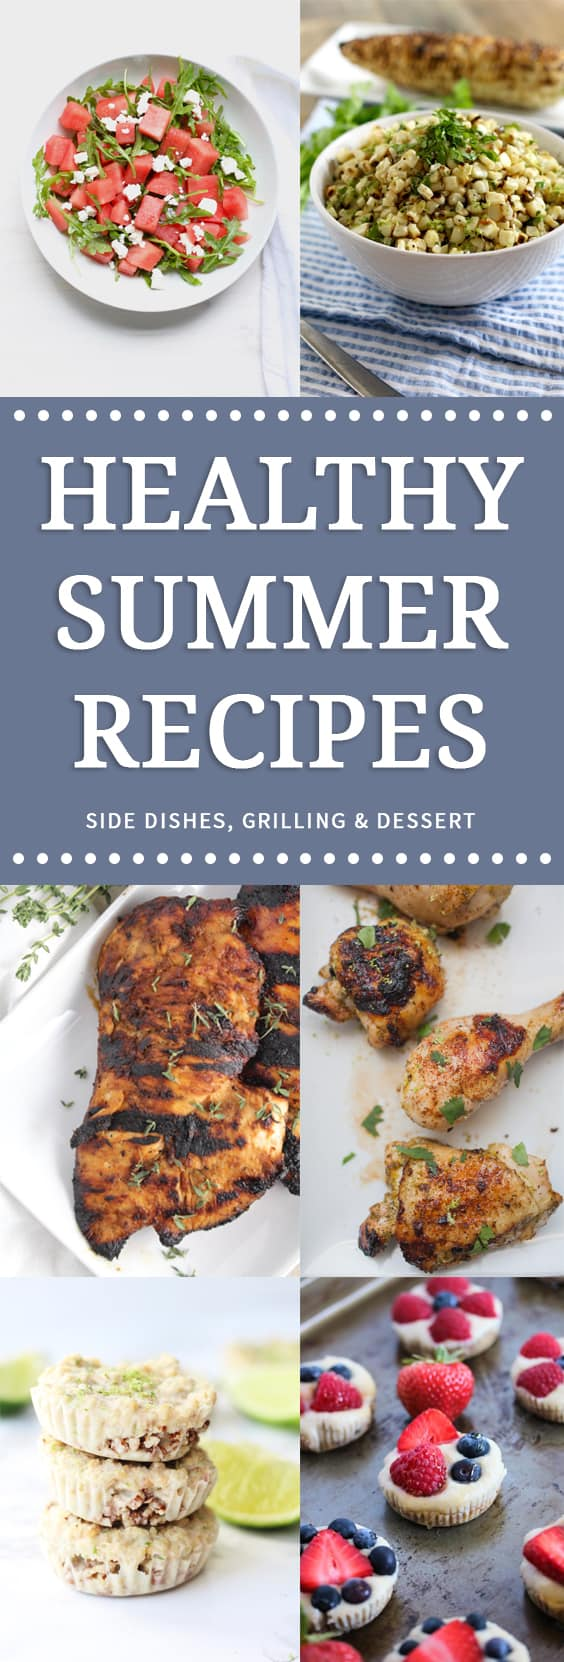 Healthy recipes that are perfect for summer. Side dishes, grilling recipes and healthy dessert options!